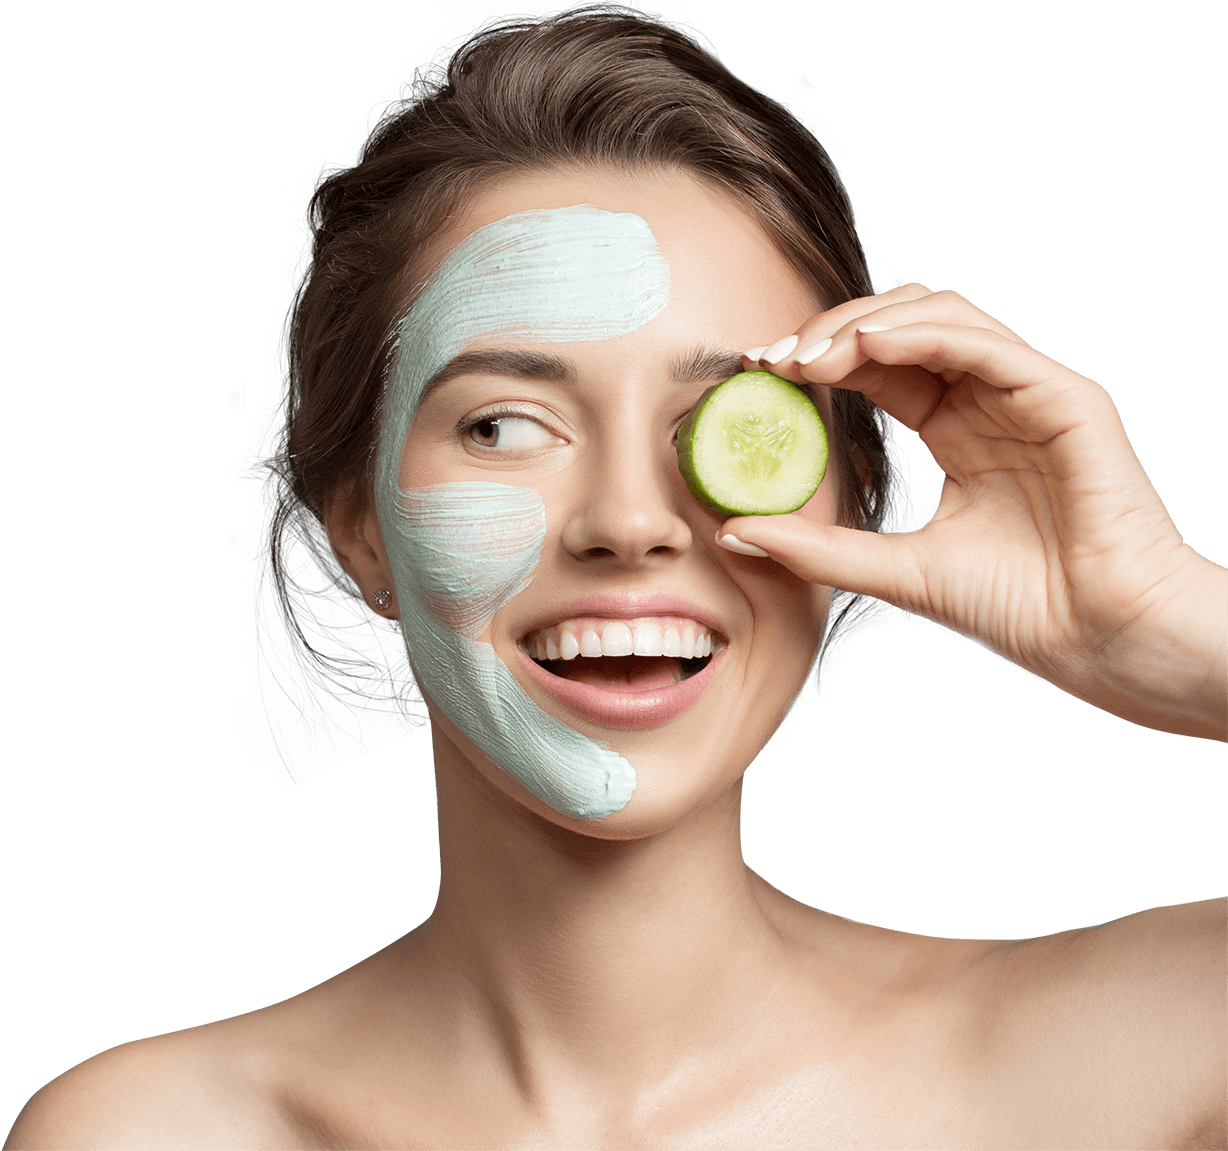 Woman wearing face cream holding a cucumber slide in front of her left eye